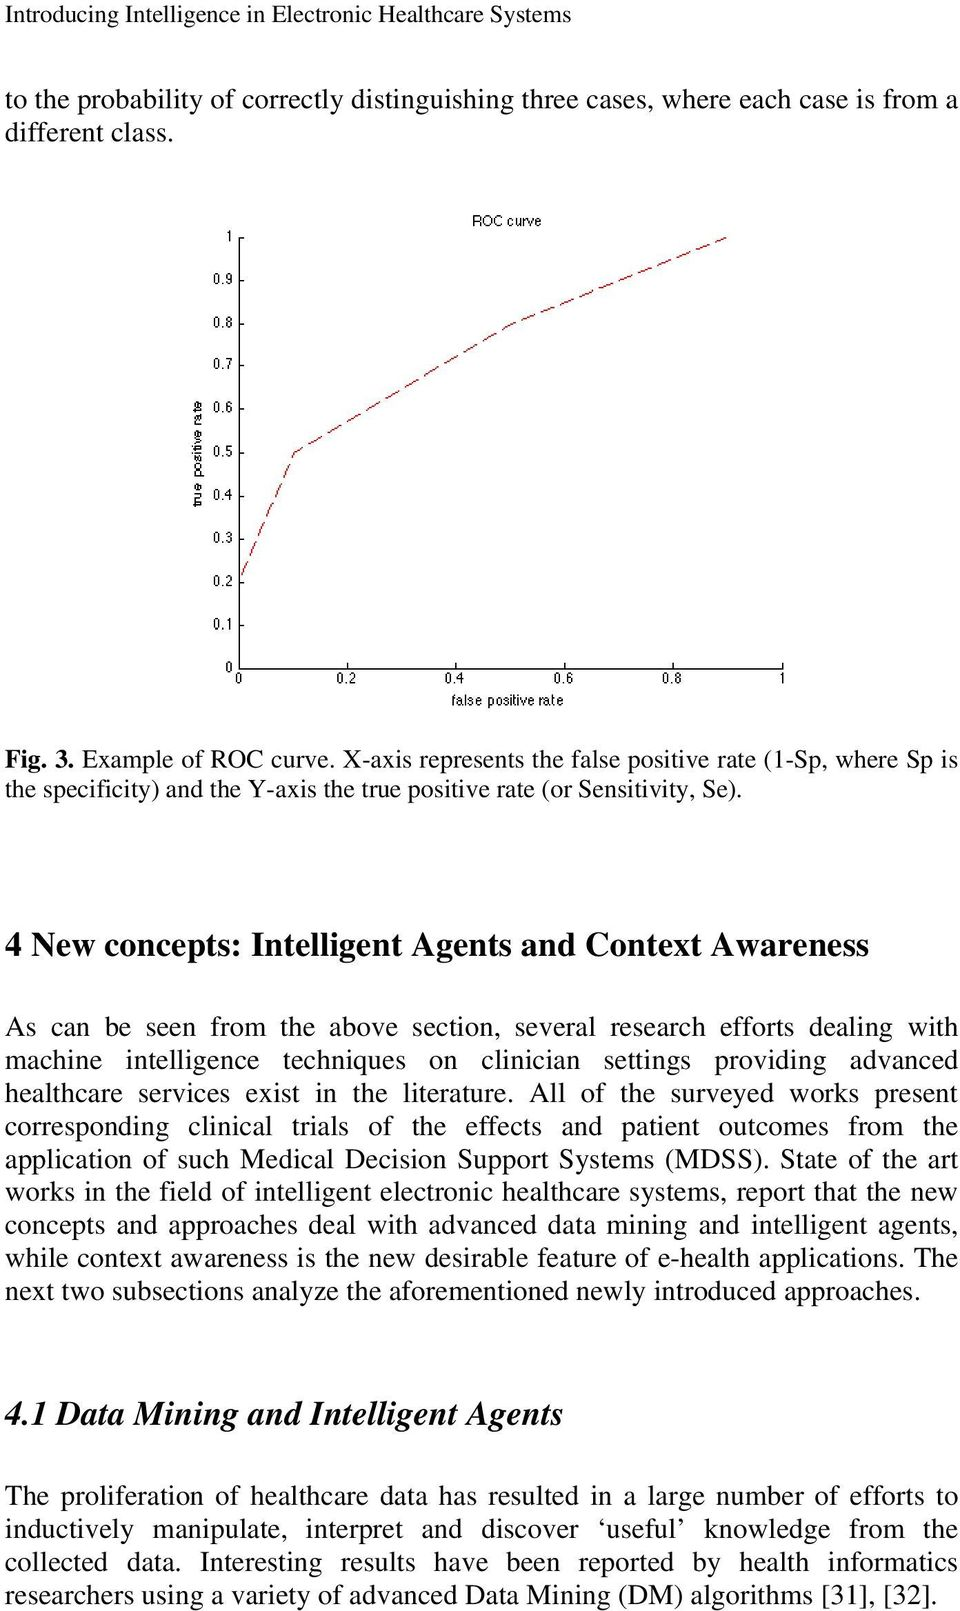 4 New concepts: Intelligent Agents and Context Awareness As can be seen from the above section, several research efforts dealing with machine intelligence techniques on clinician settings providing